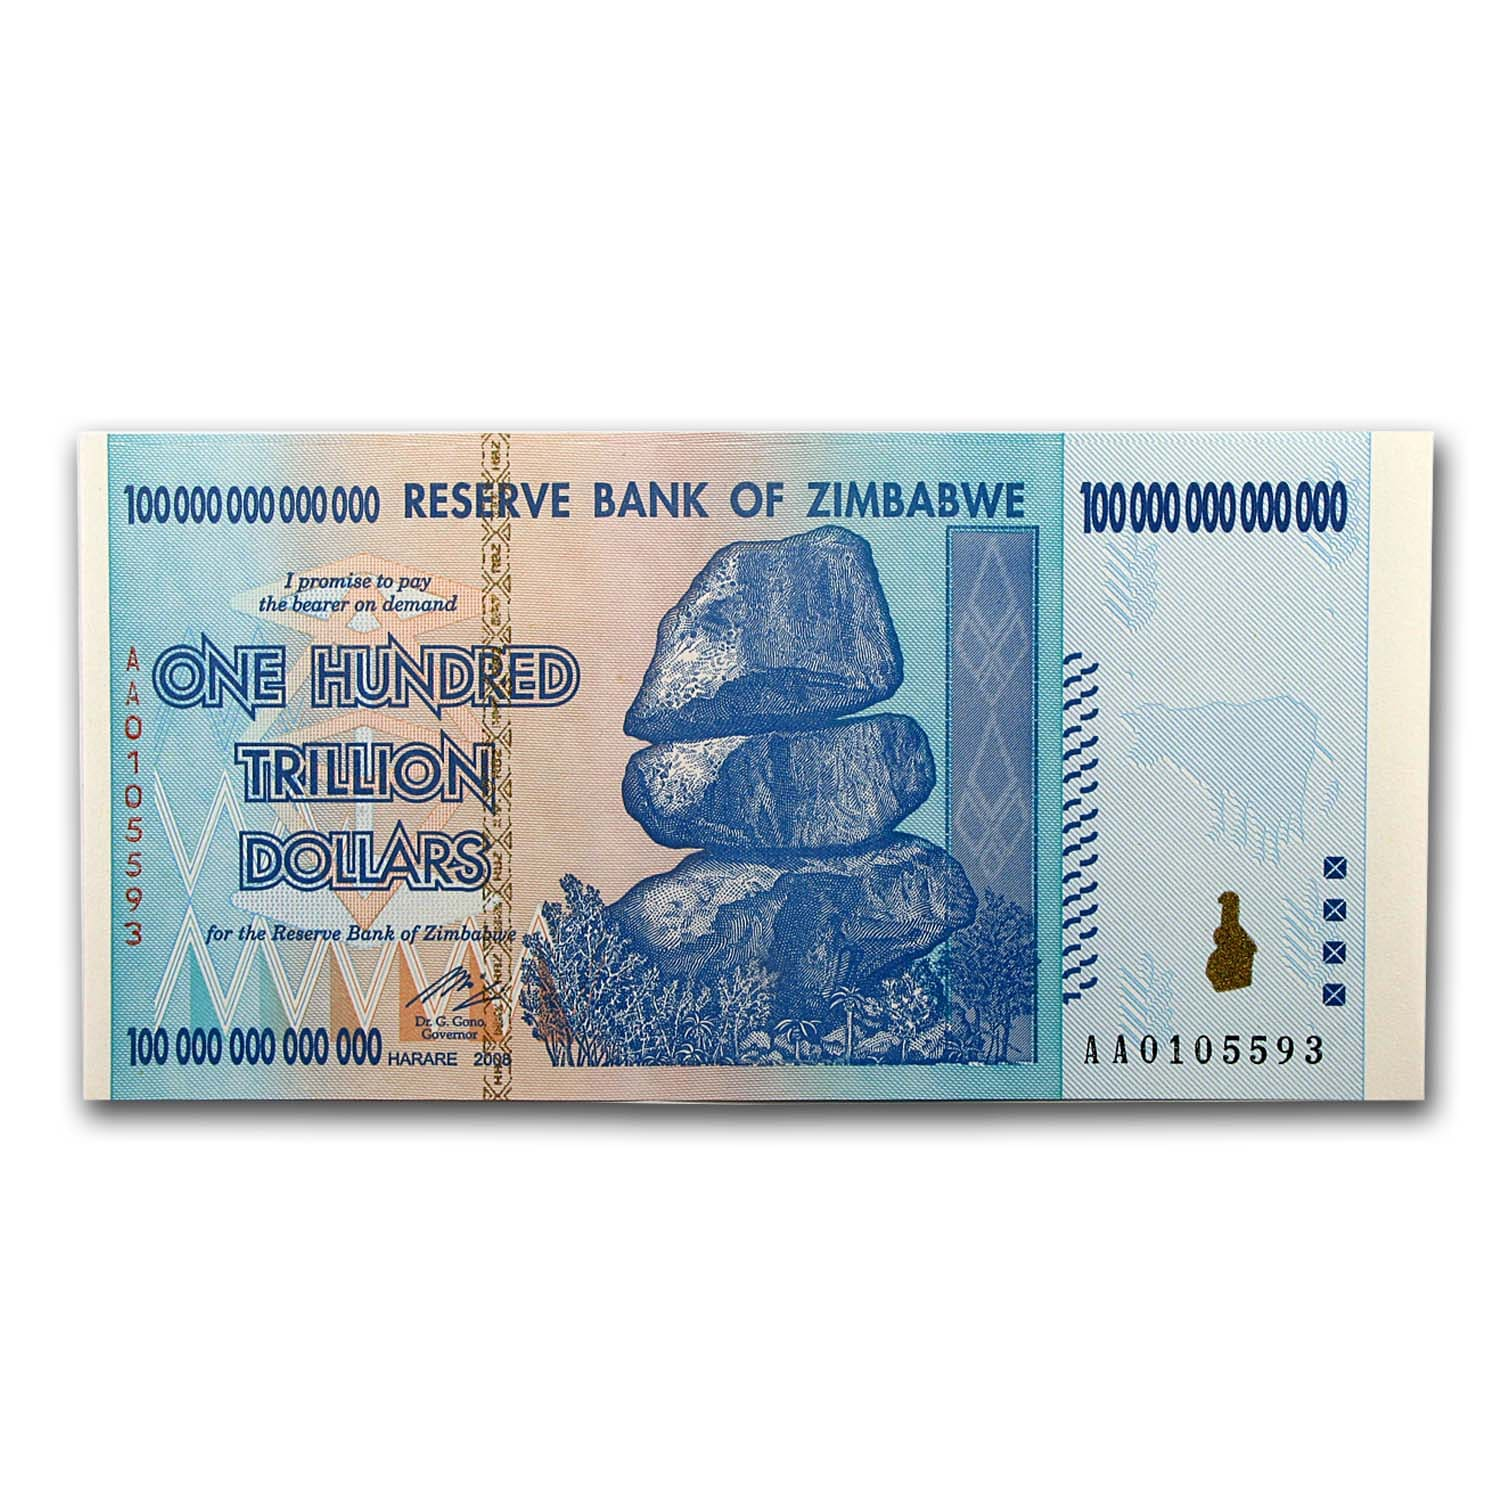 Zimbabwe 2008 100 Trillion Dollars Unc Waterfall Buffalo